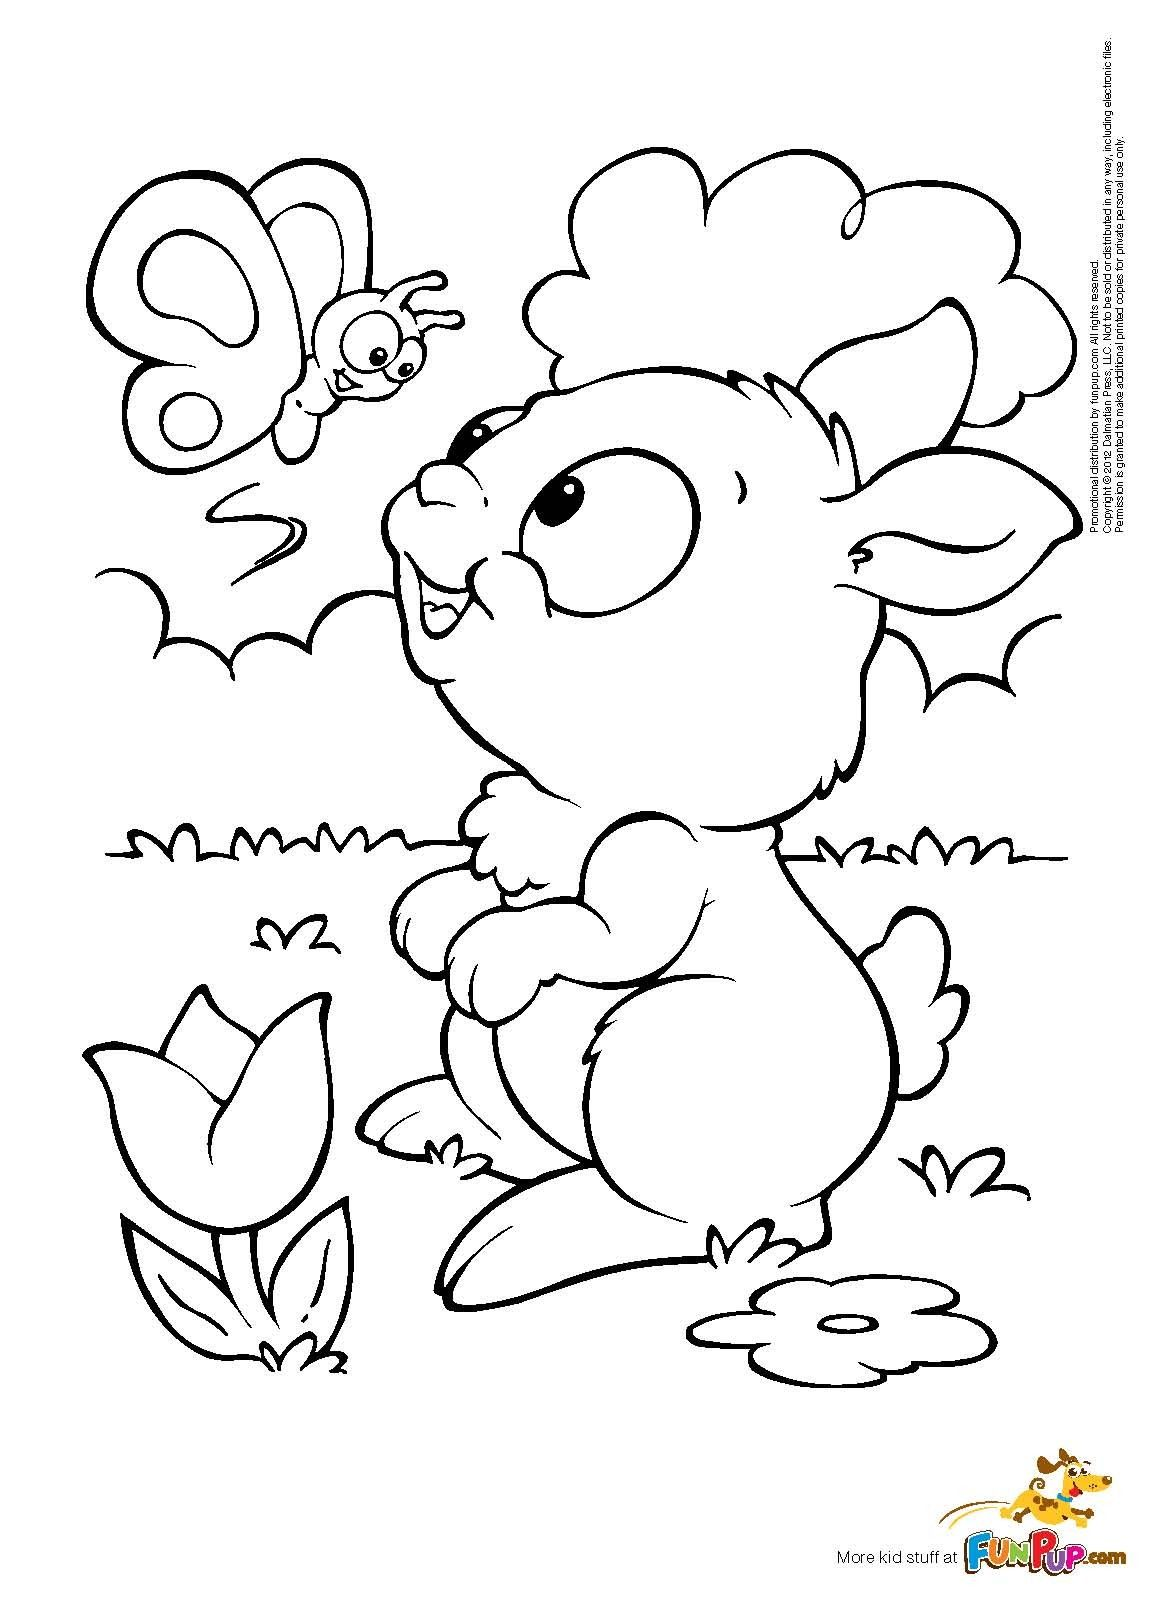 Butterfly Bunny Coloring Page | Free Printable Coloring Pages ...